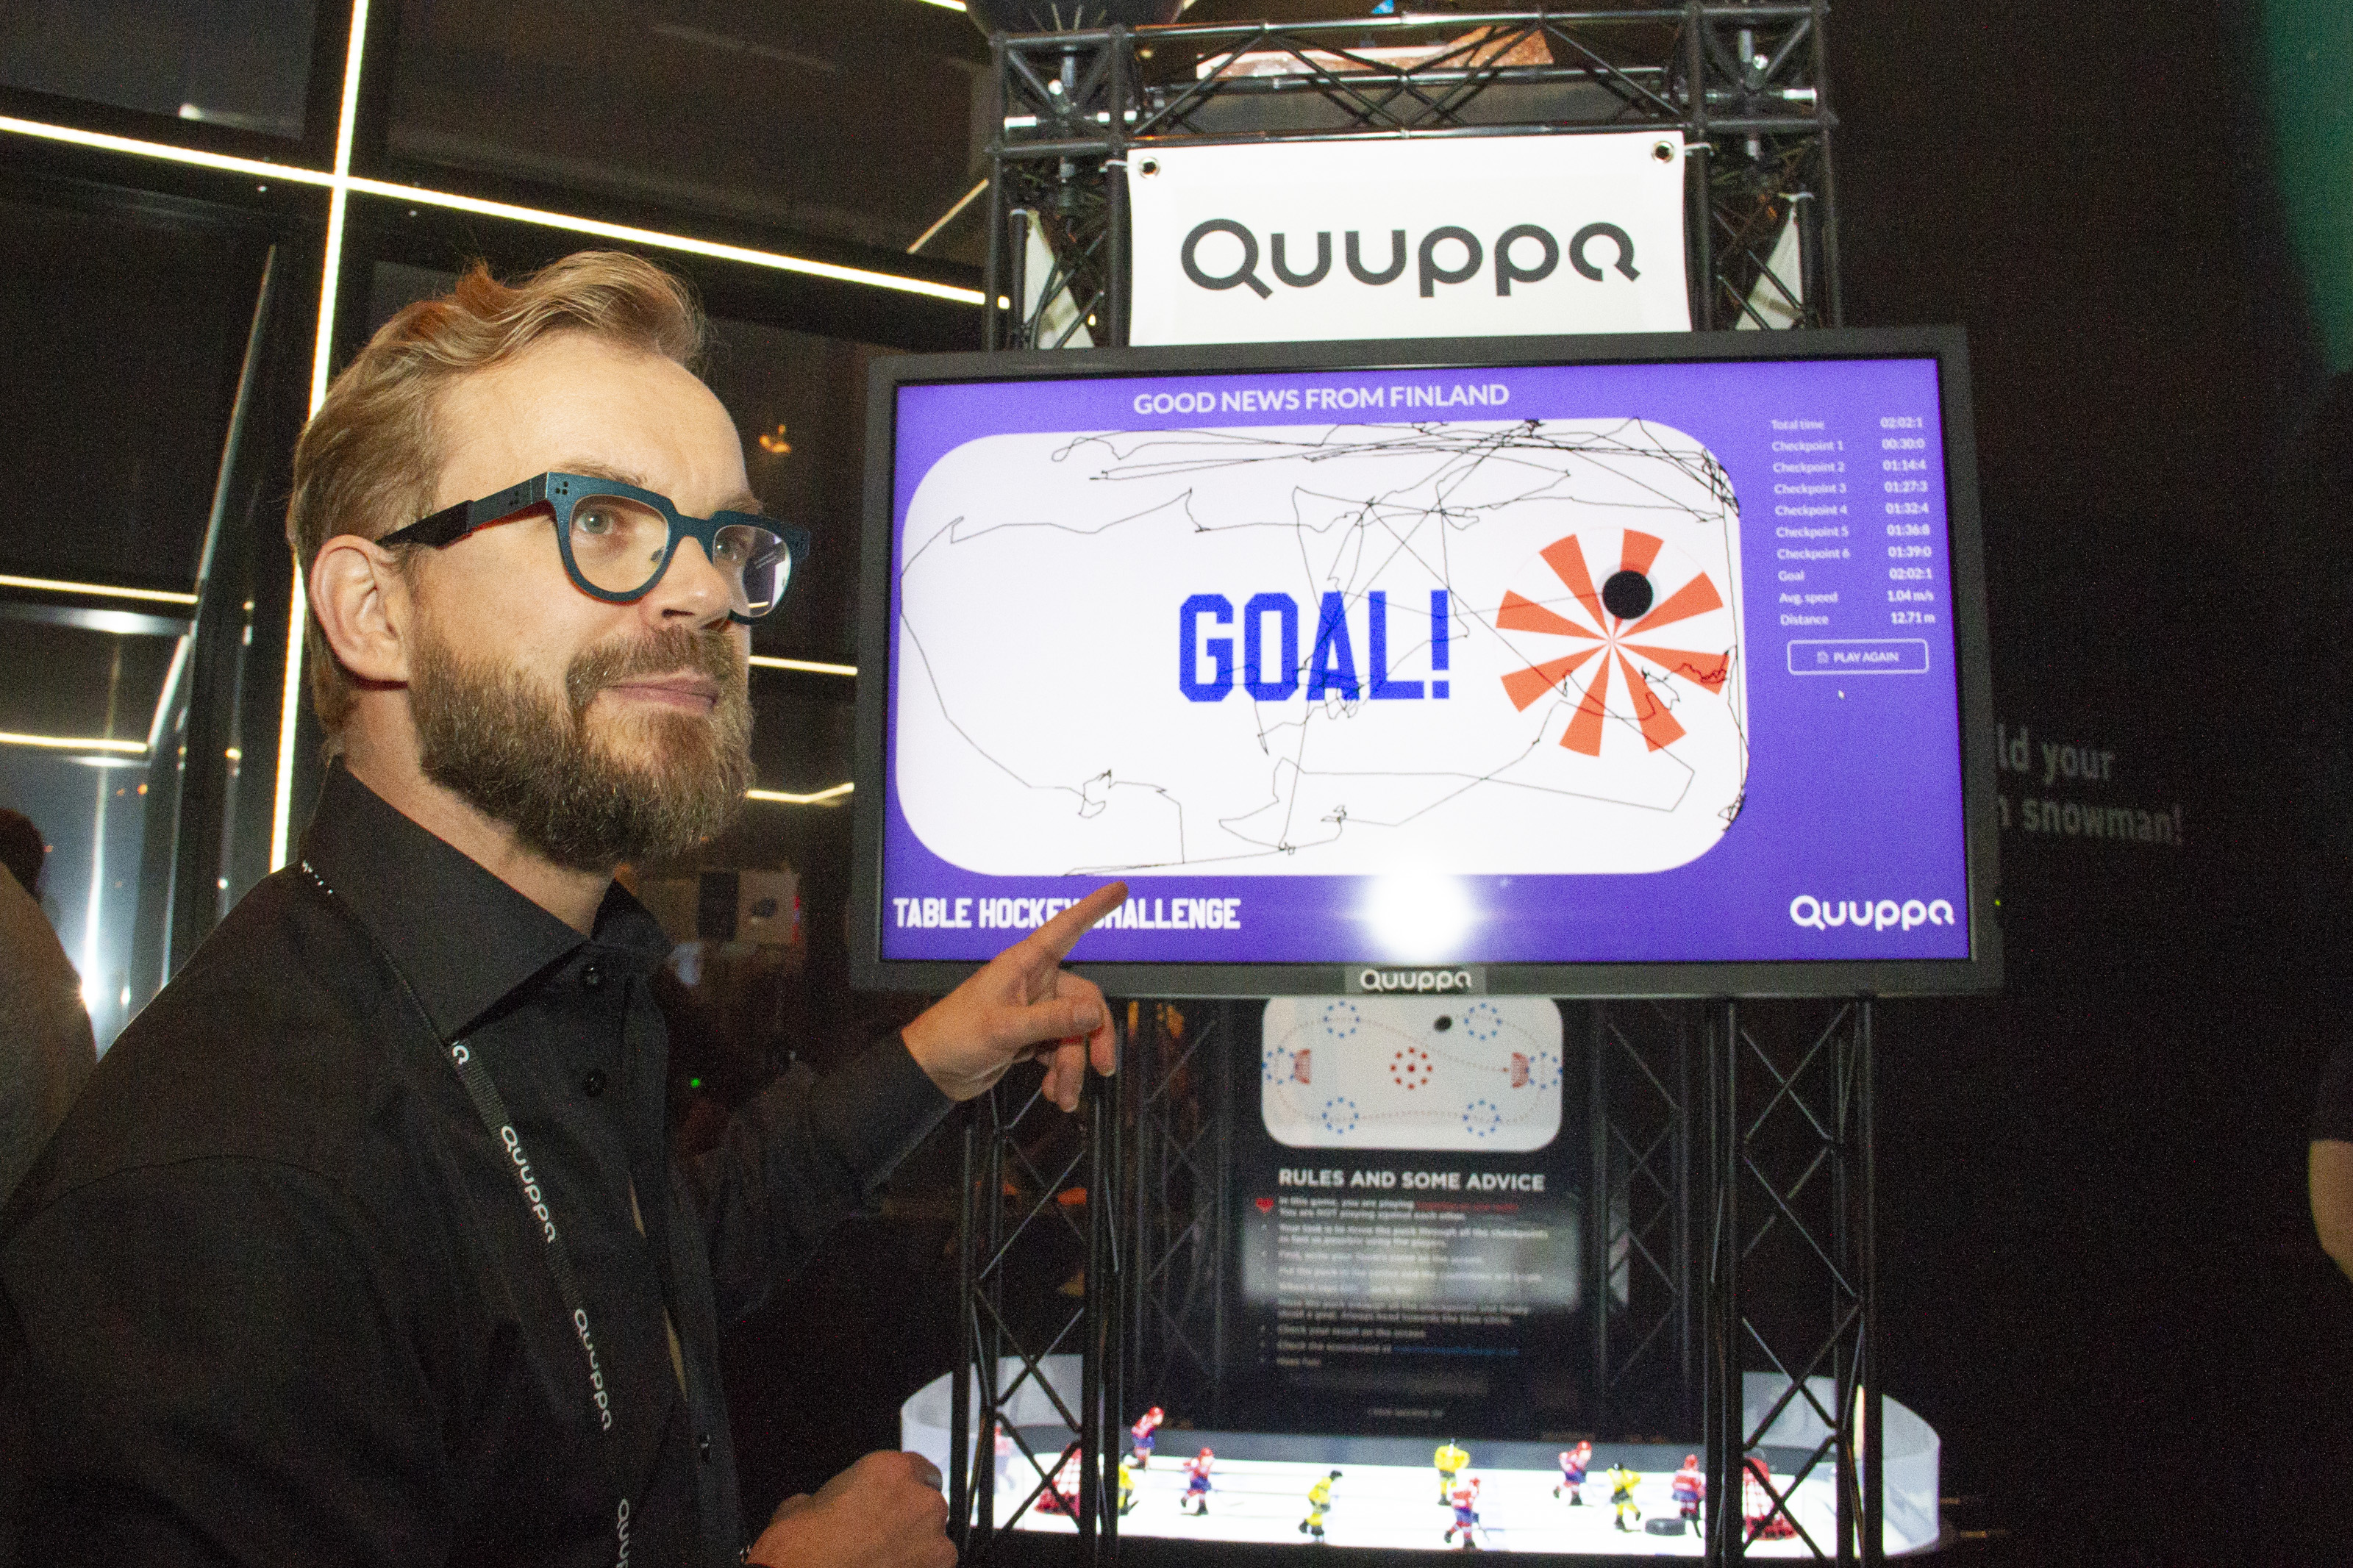 Good News from Finland played a table hockey game with Quuppa's Ville Norra to test its accurate indoor positioning technology, which is used also in the Finnish hockey league in real life. The result of the game was not so straightforward, however.